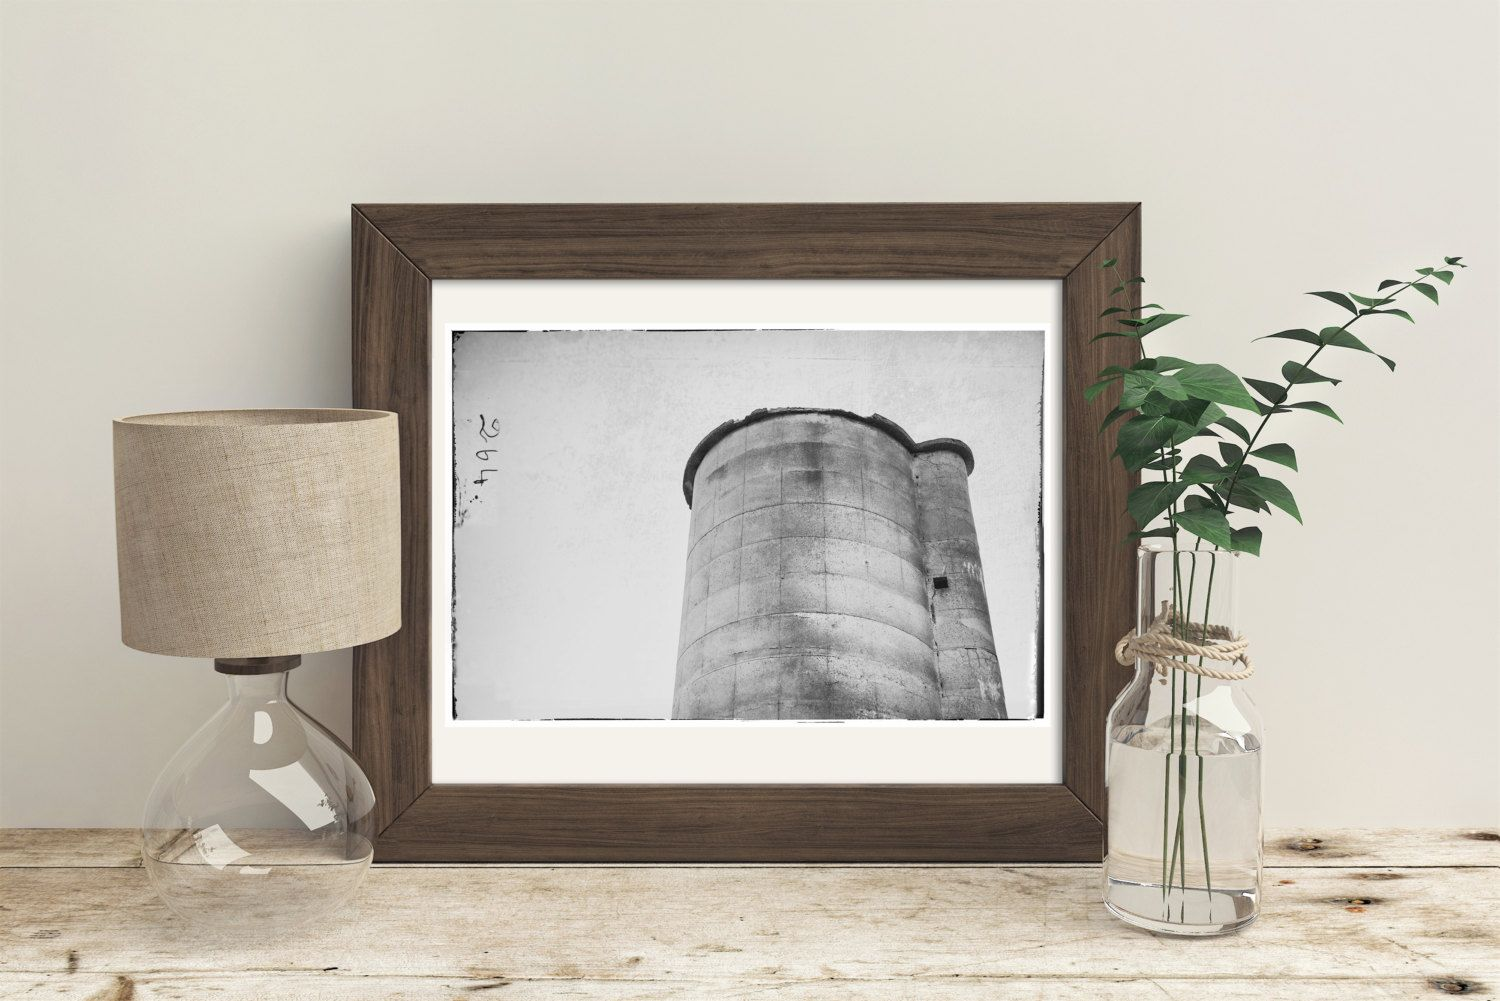 Barn Silo in Black and White, Modern Farmhouse Decor, Wall